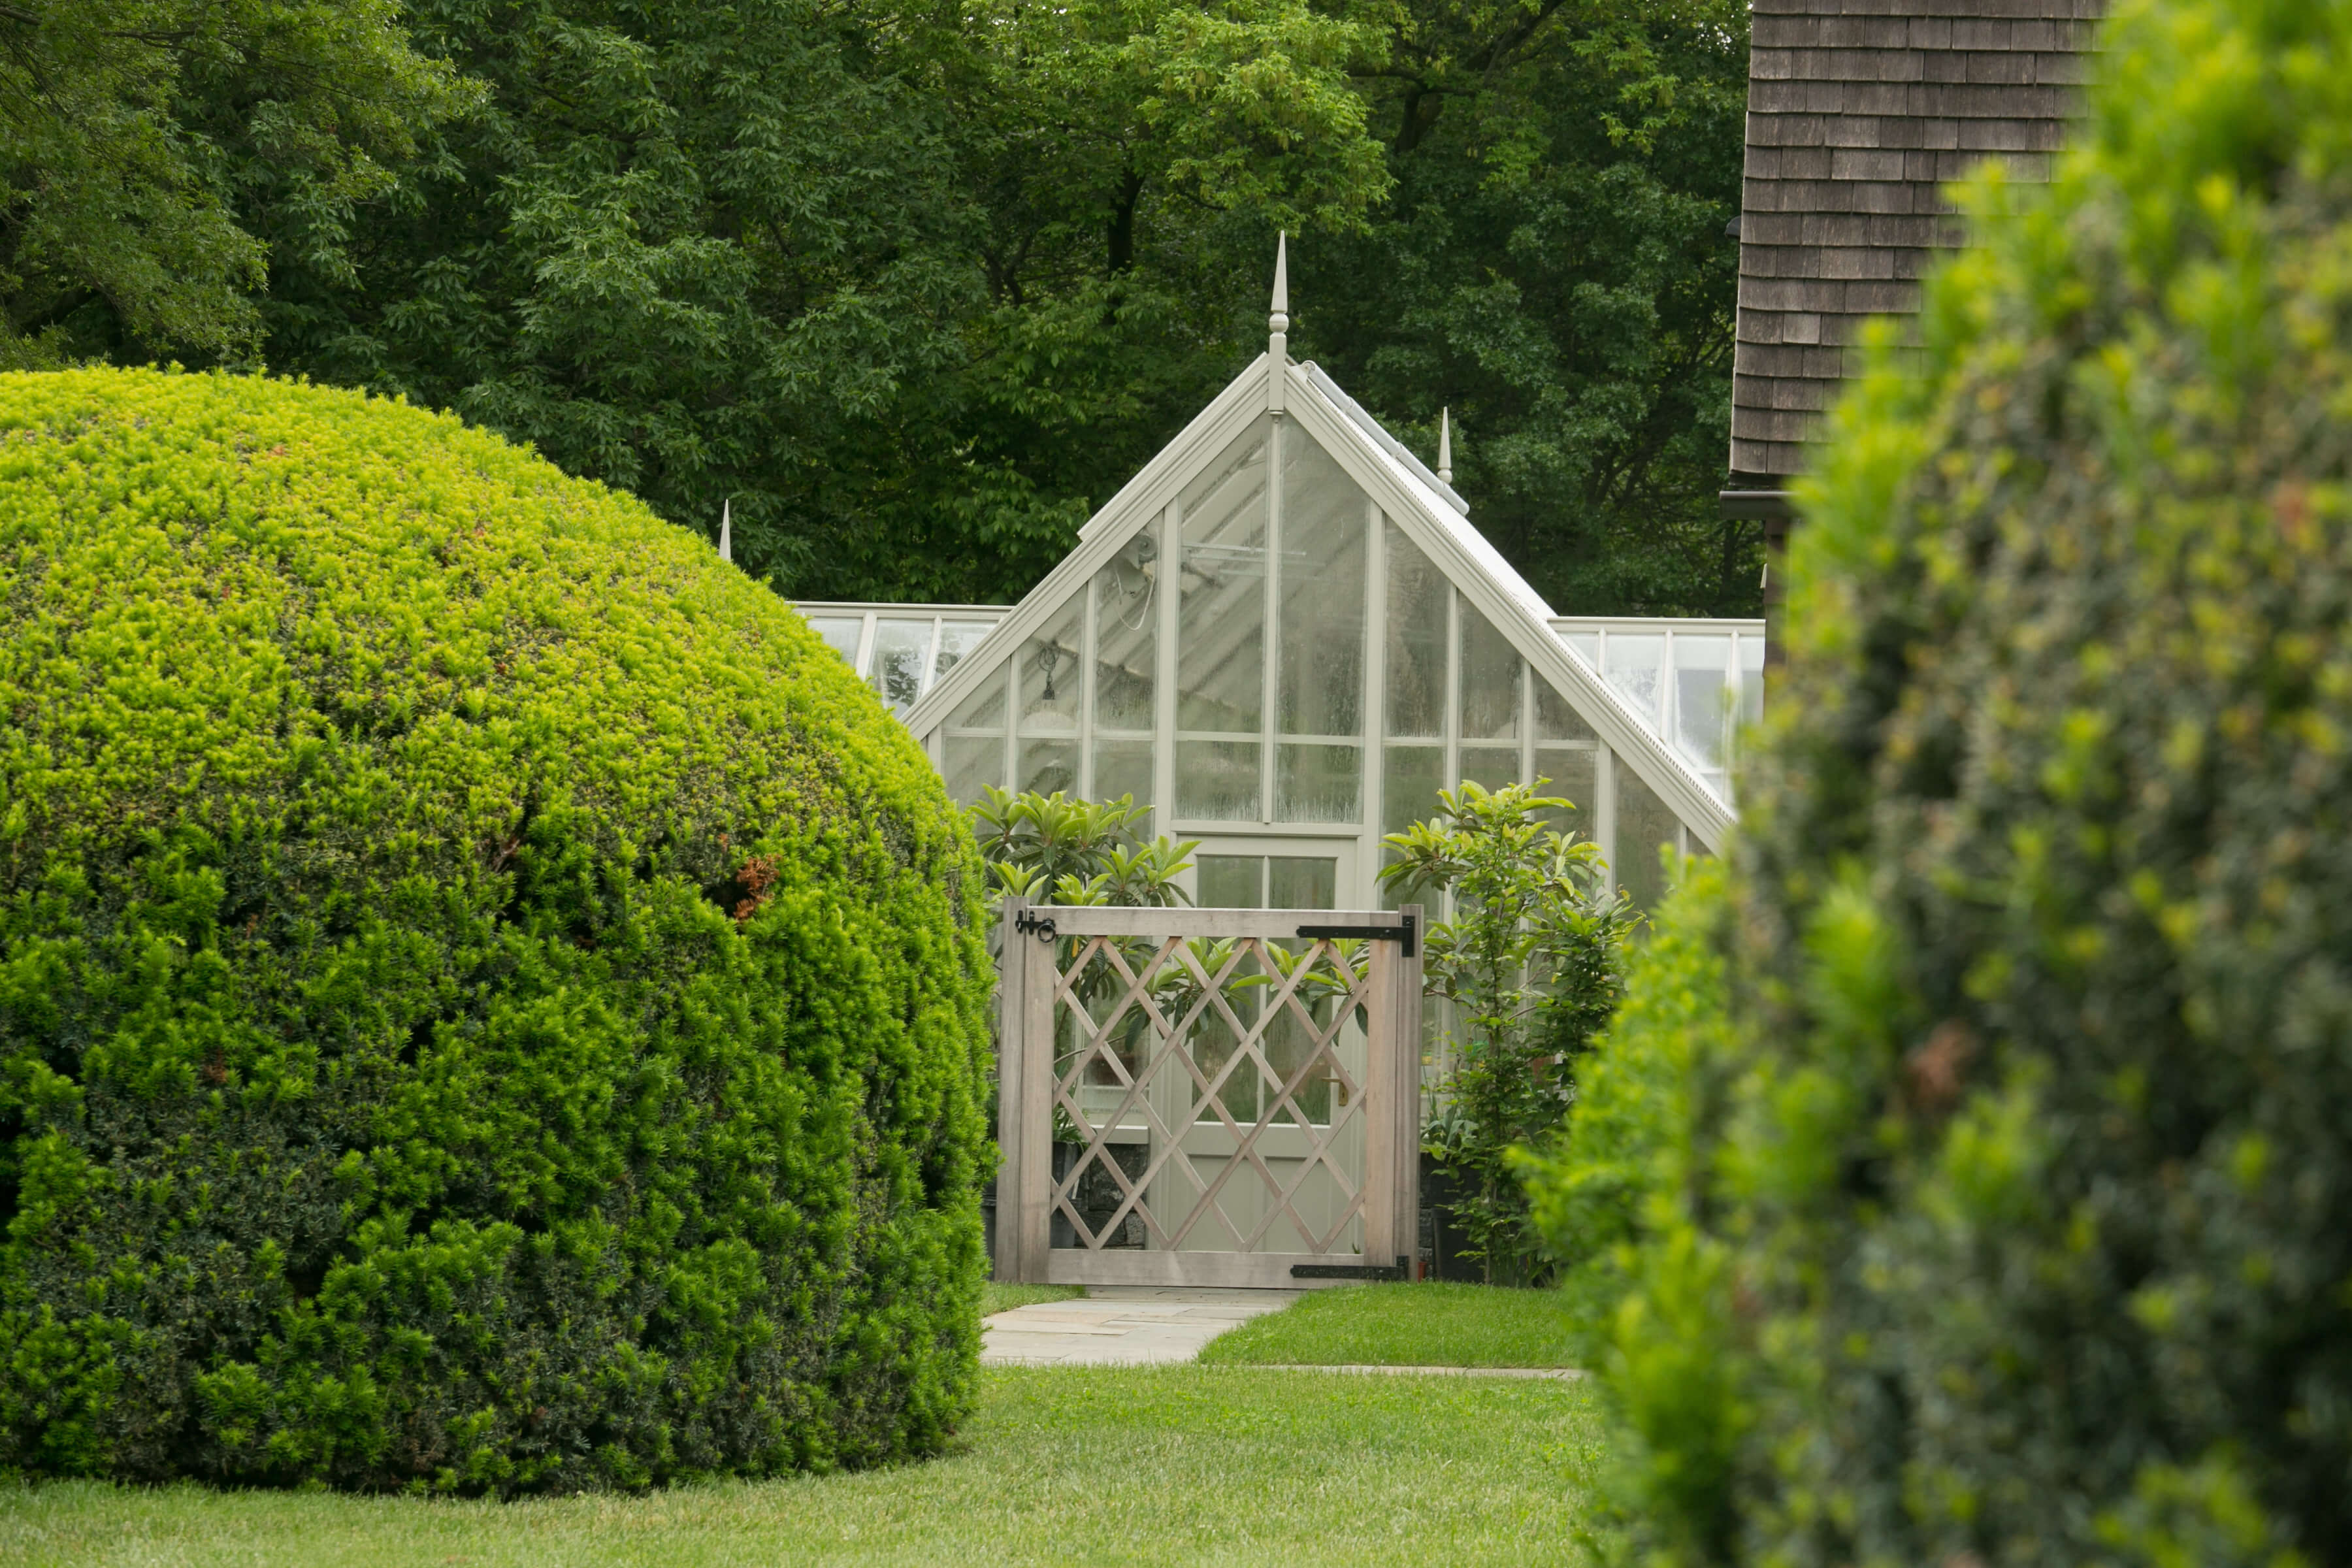 Alitex Glasshouse in the USA